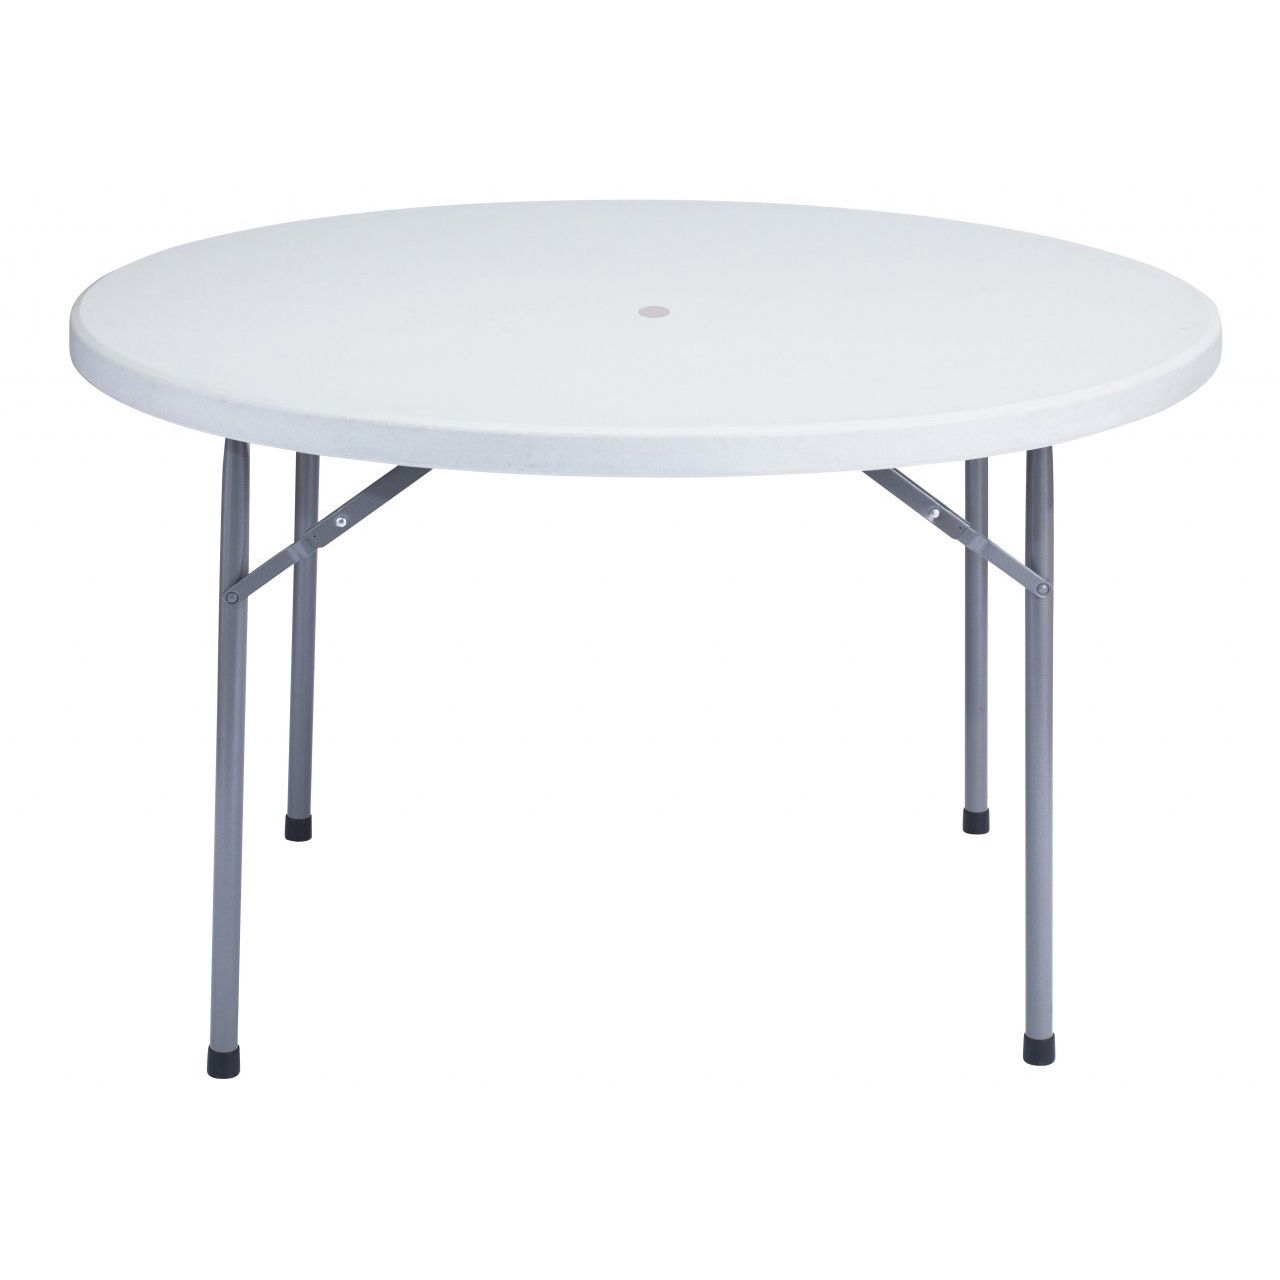 48 Round Plastic Folding Table With Umbrella Hole Classic Series Round Folding Table Folding Table Lightweight Folding Table